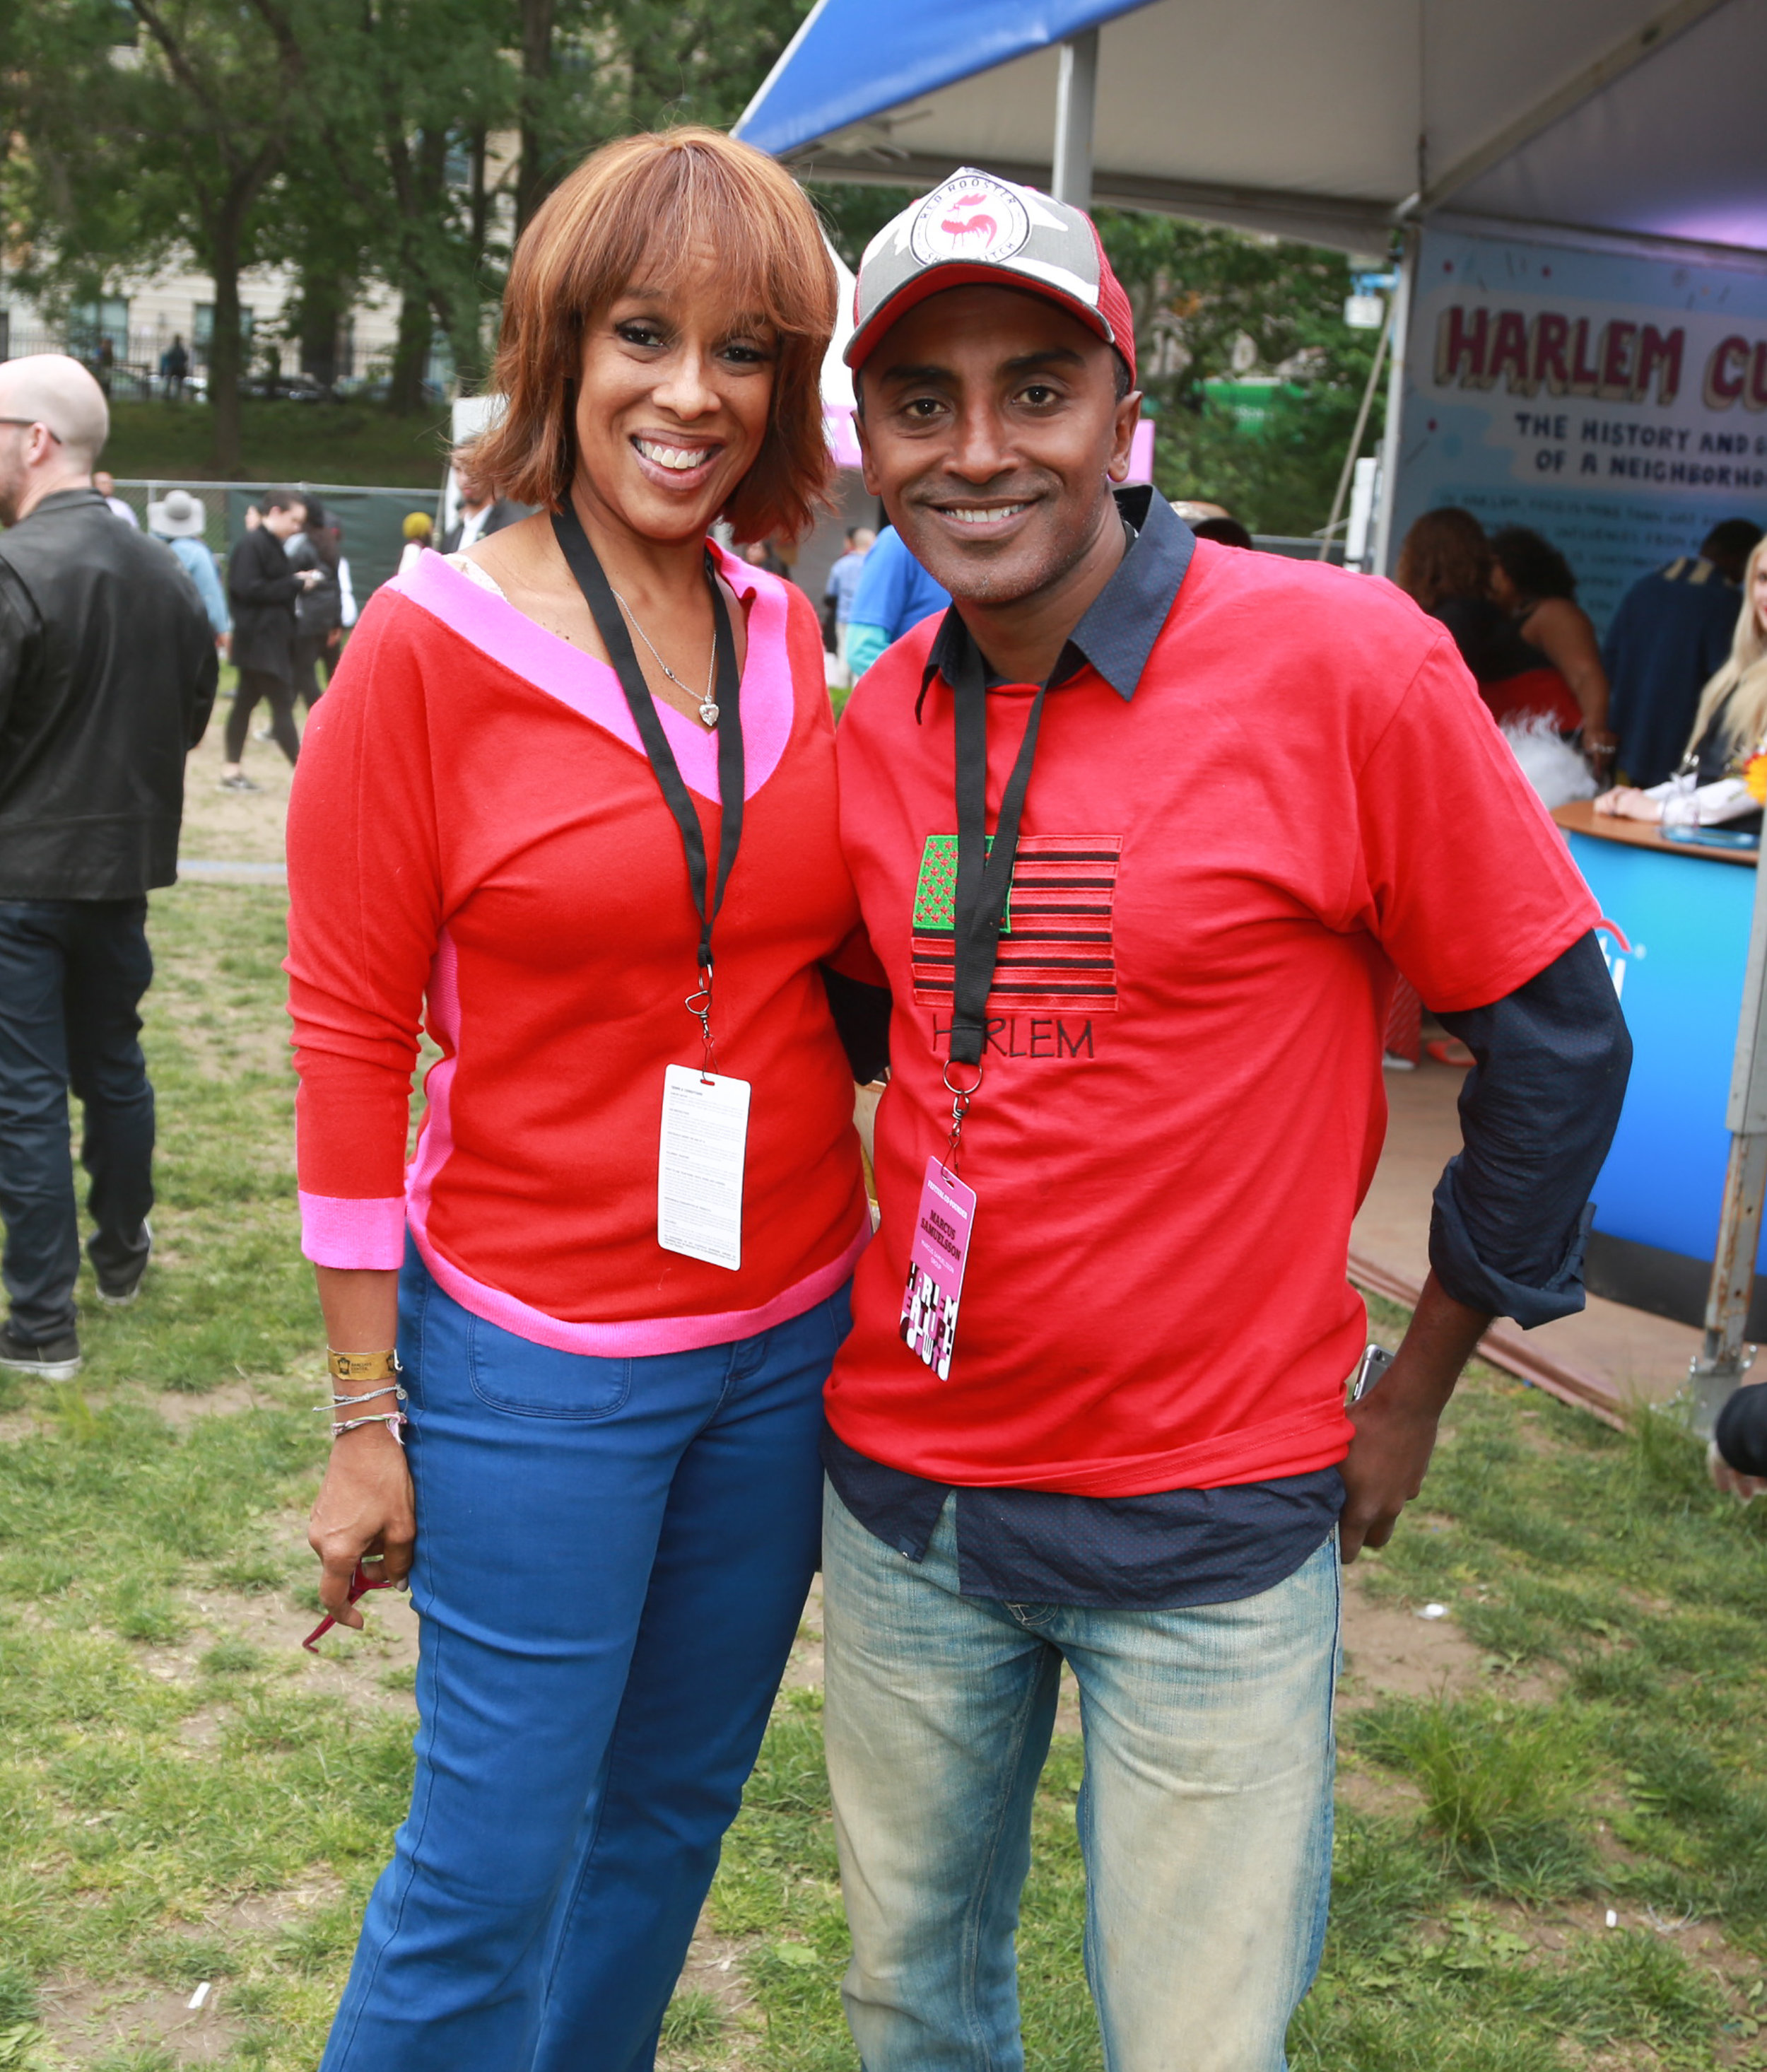 Harlem EatUp! : Gayle King and Marcus Samuelsson